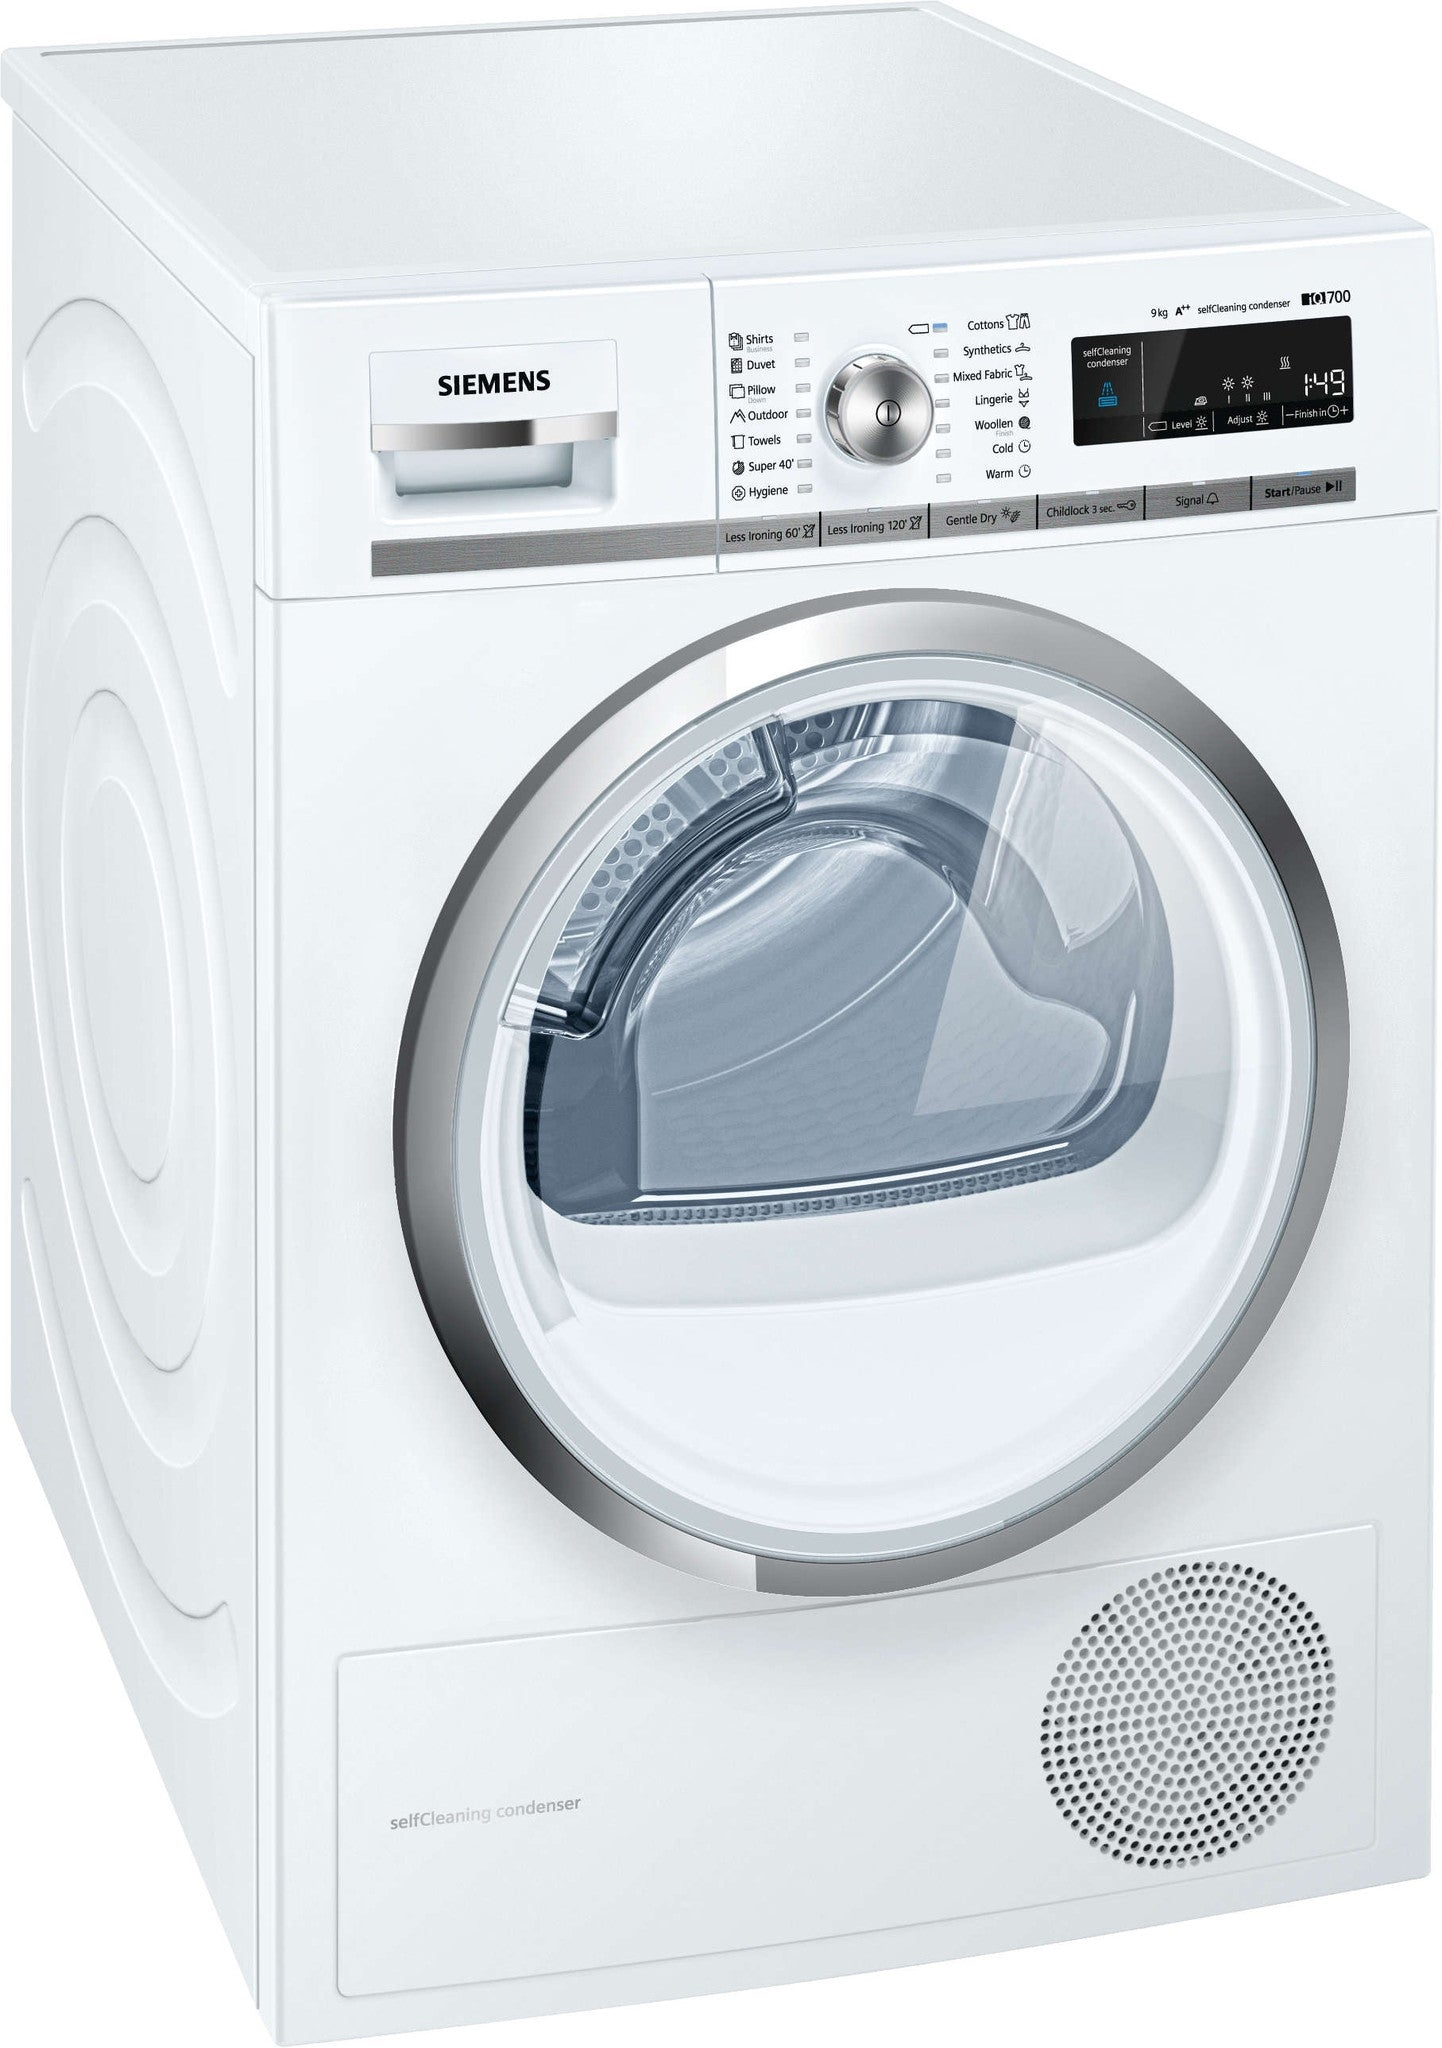 Siemens iQ700 WT47W540BY Freestanding Conderser Tumble Dryer White